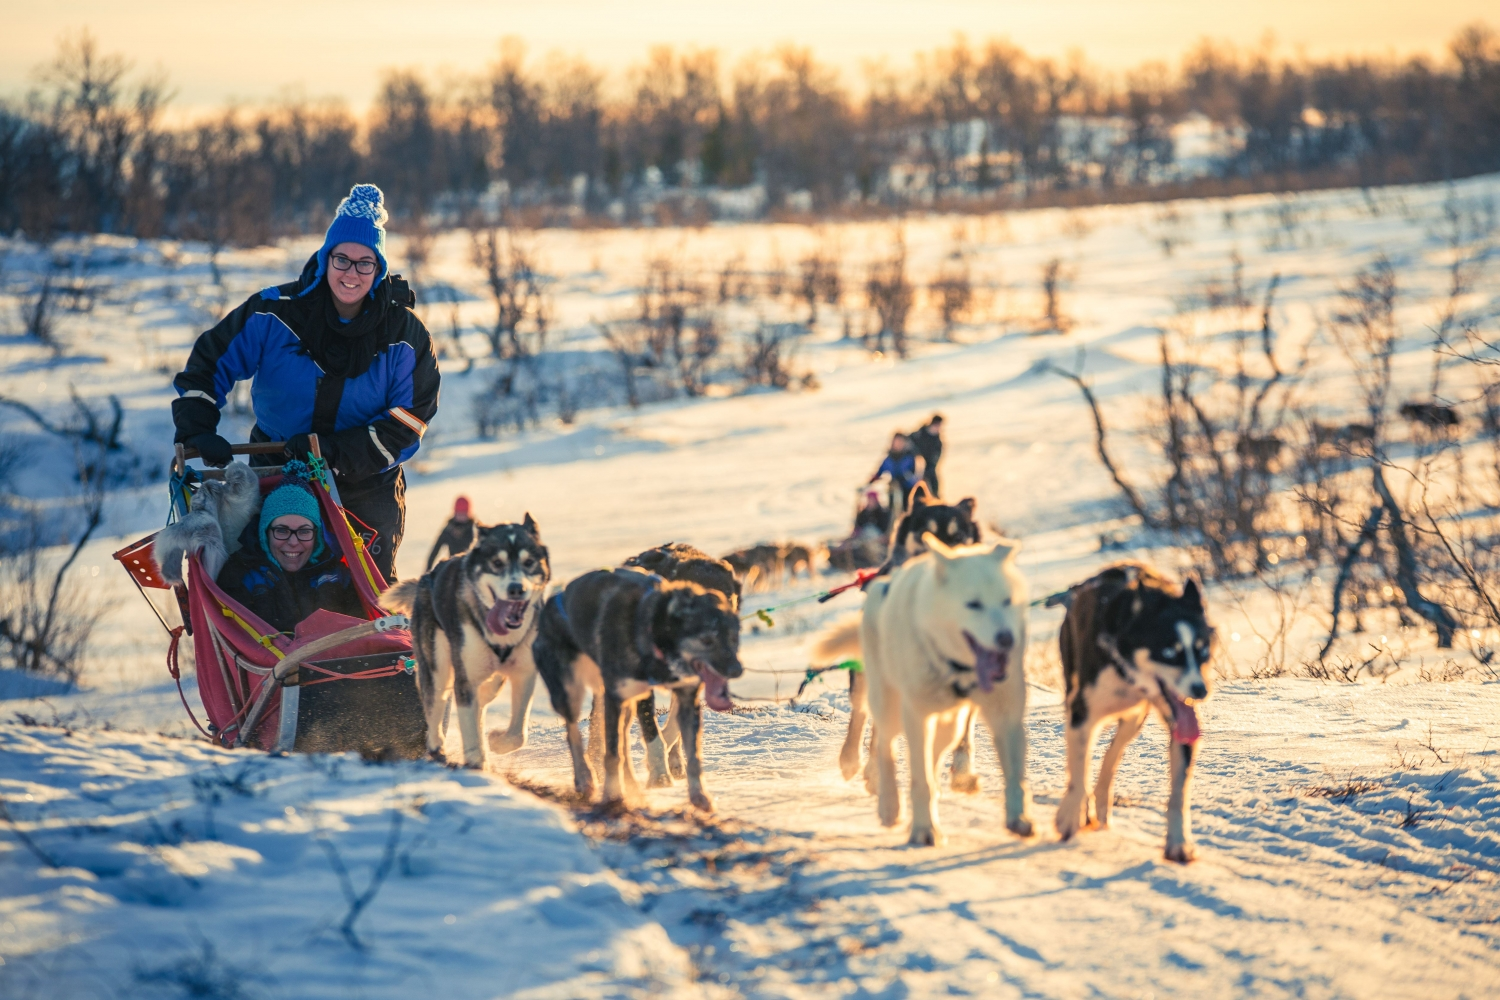 Dog sledding in winter landscape with the sun shining on the snow